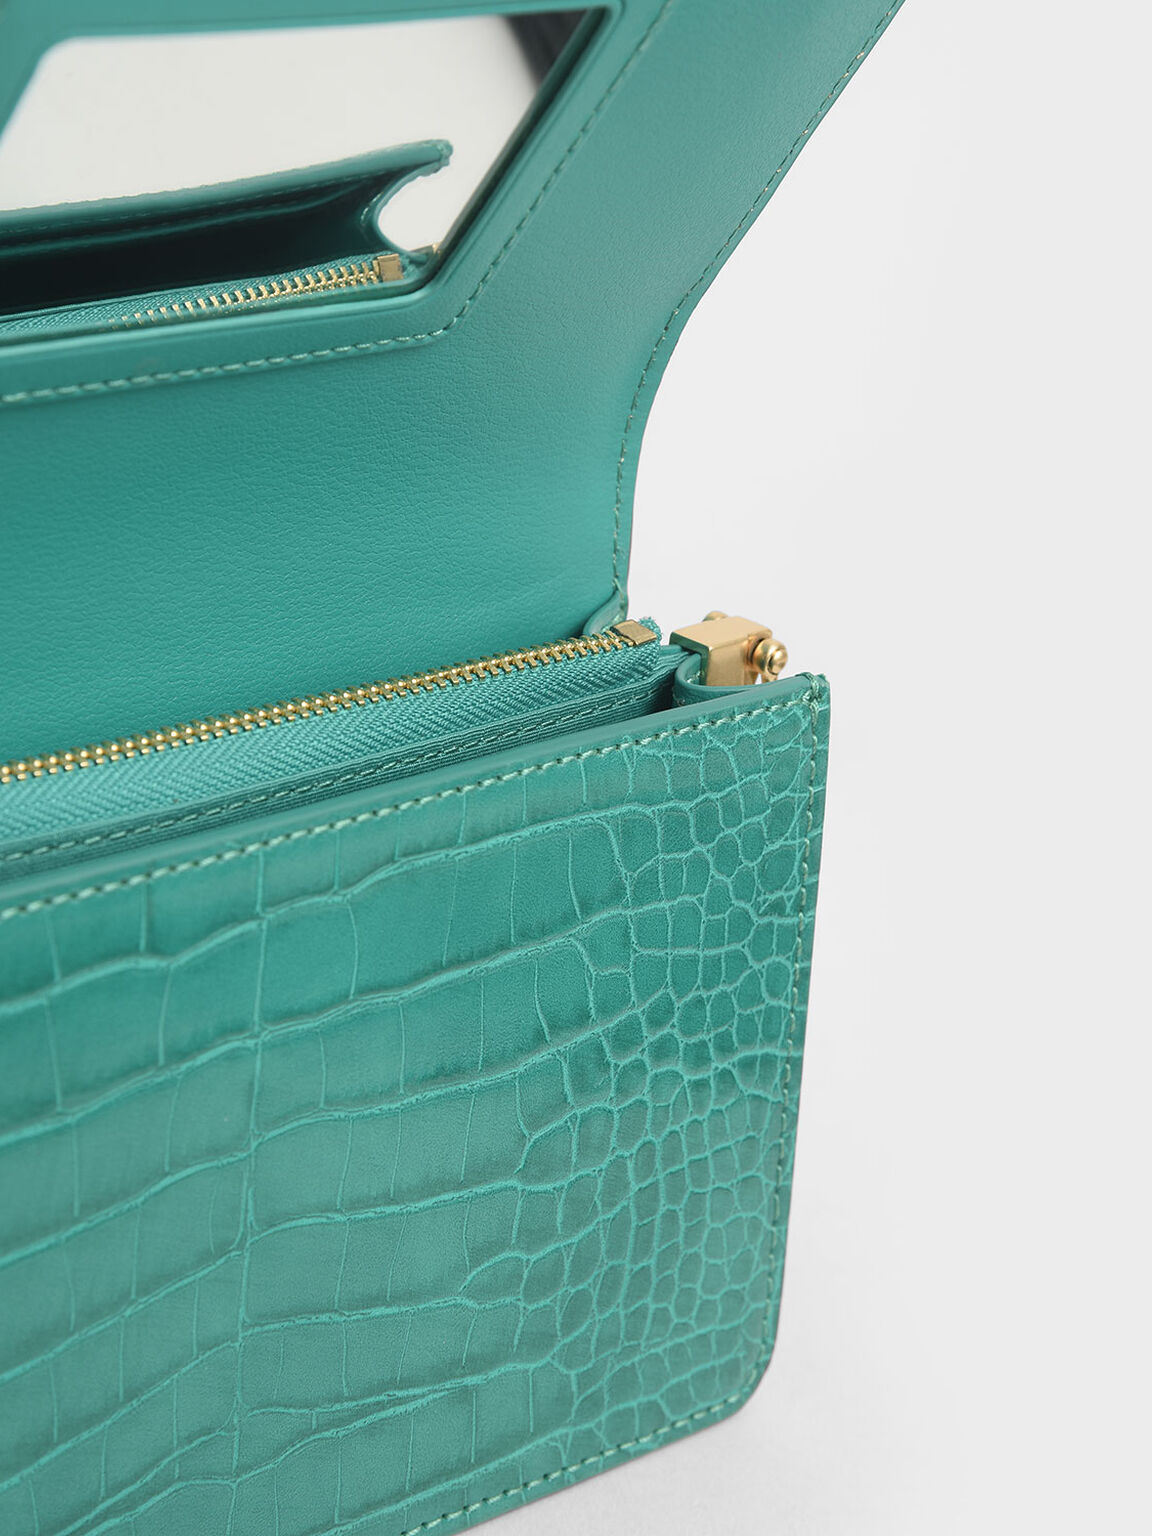 Croc-Effect Clutch, Teal, hi-res